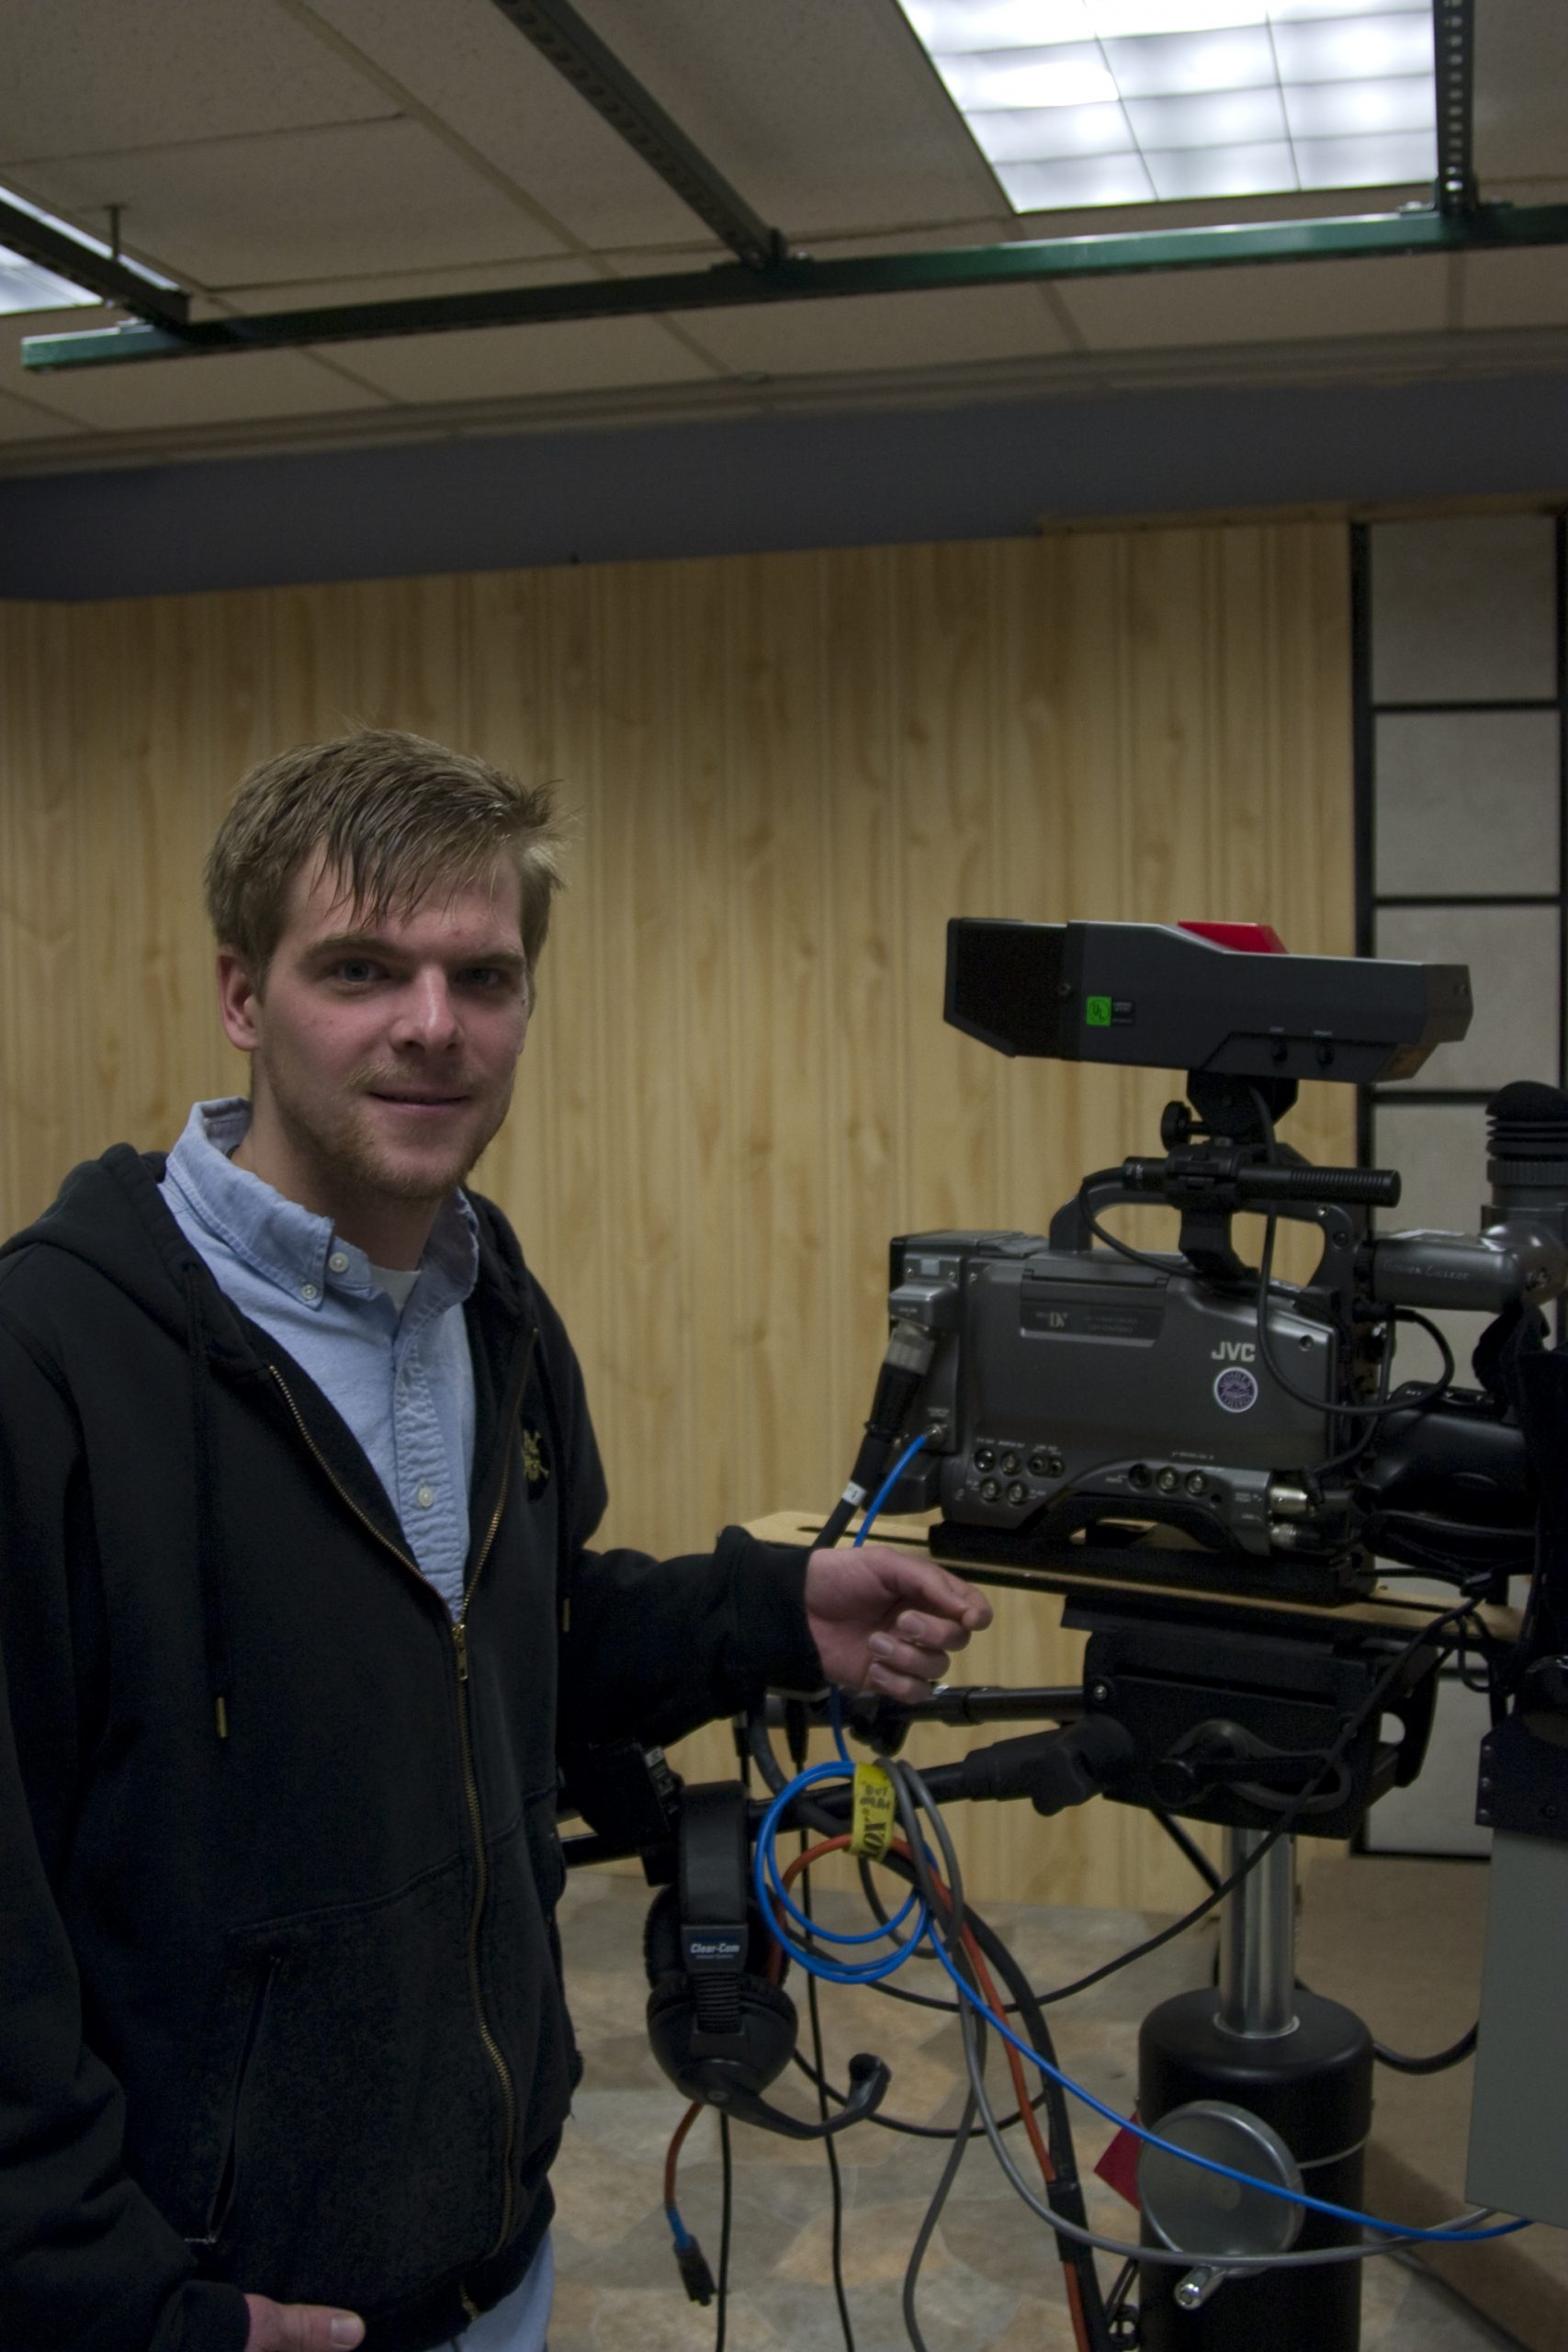 Dusty Diller stands next to a large film camera